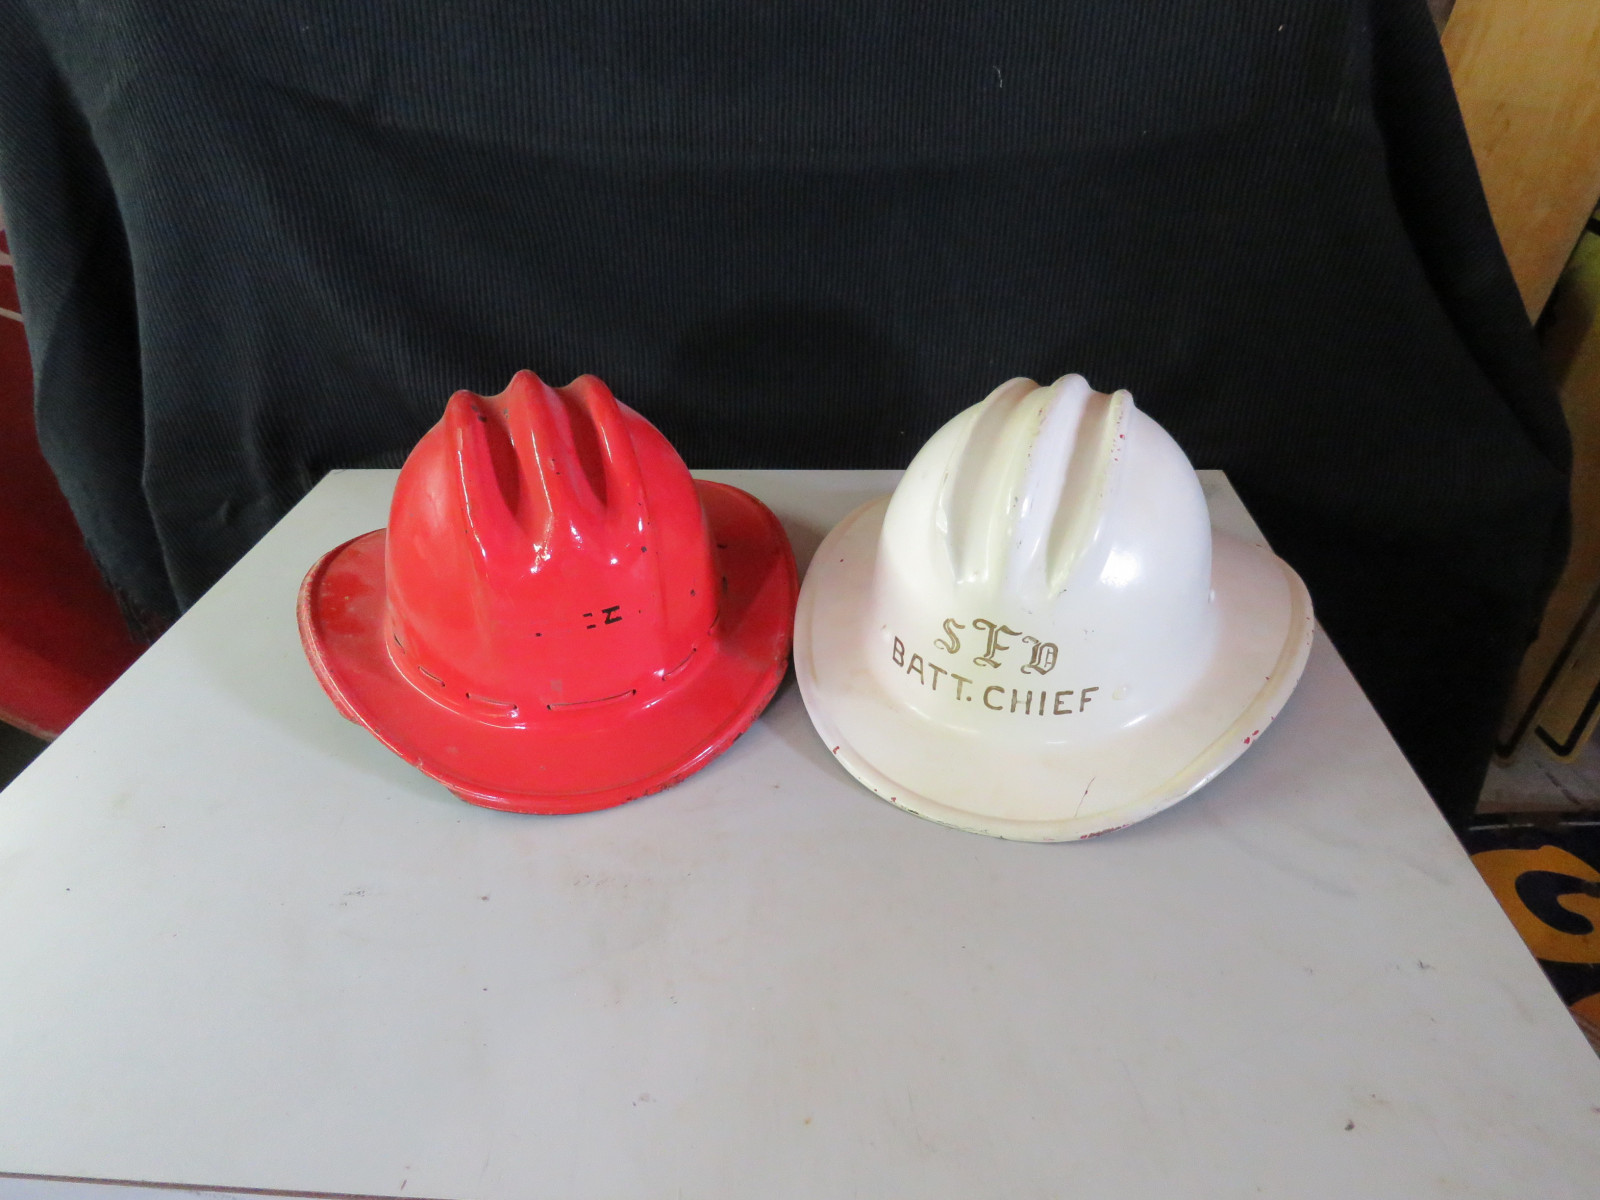 2 Vintage Fire Chief Helmets - Image 1